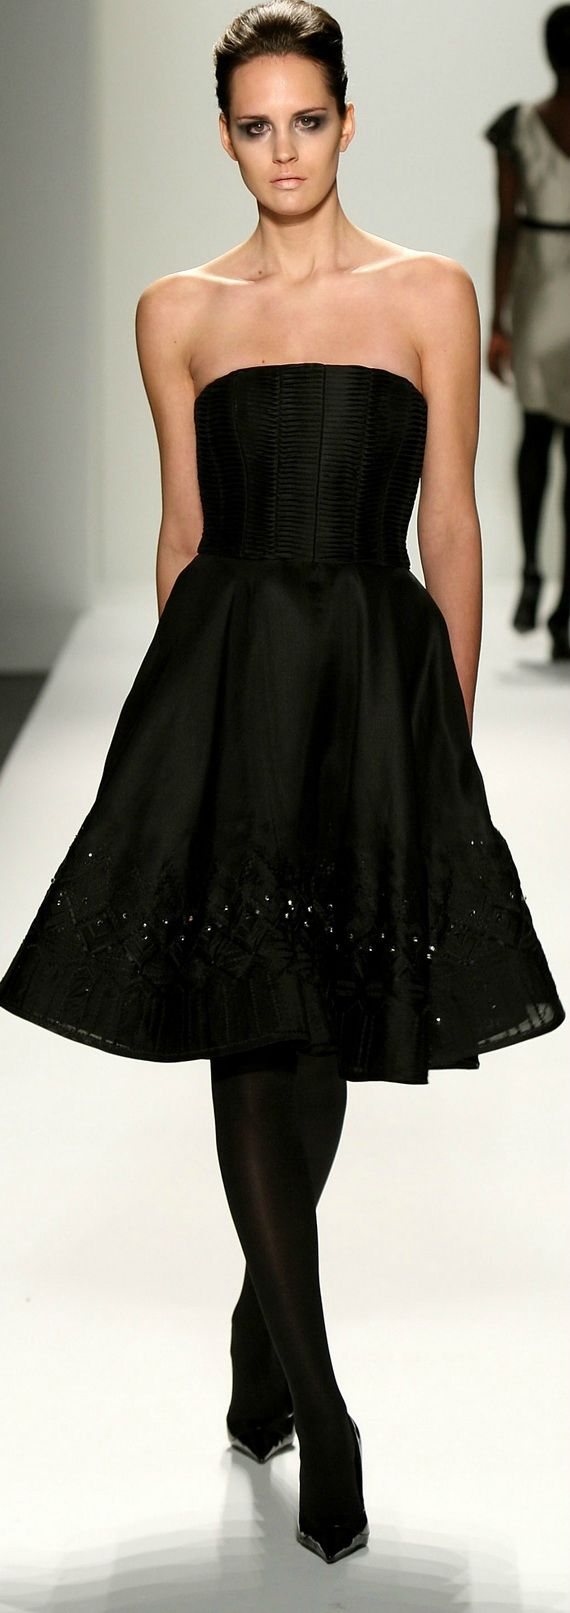 Gorgeous!! All the black with the tights and the shoes make your eye go straight to her beautiful face and shoulders.